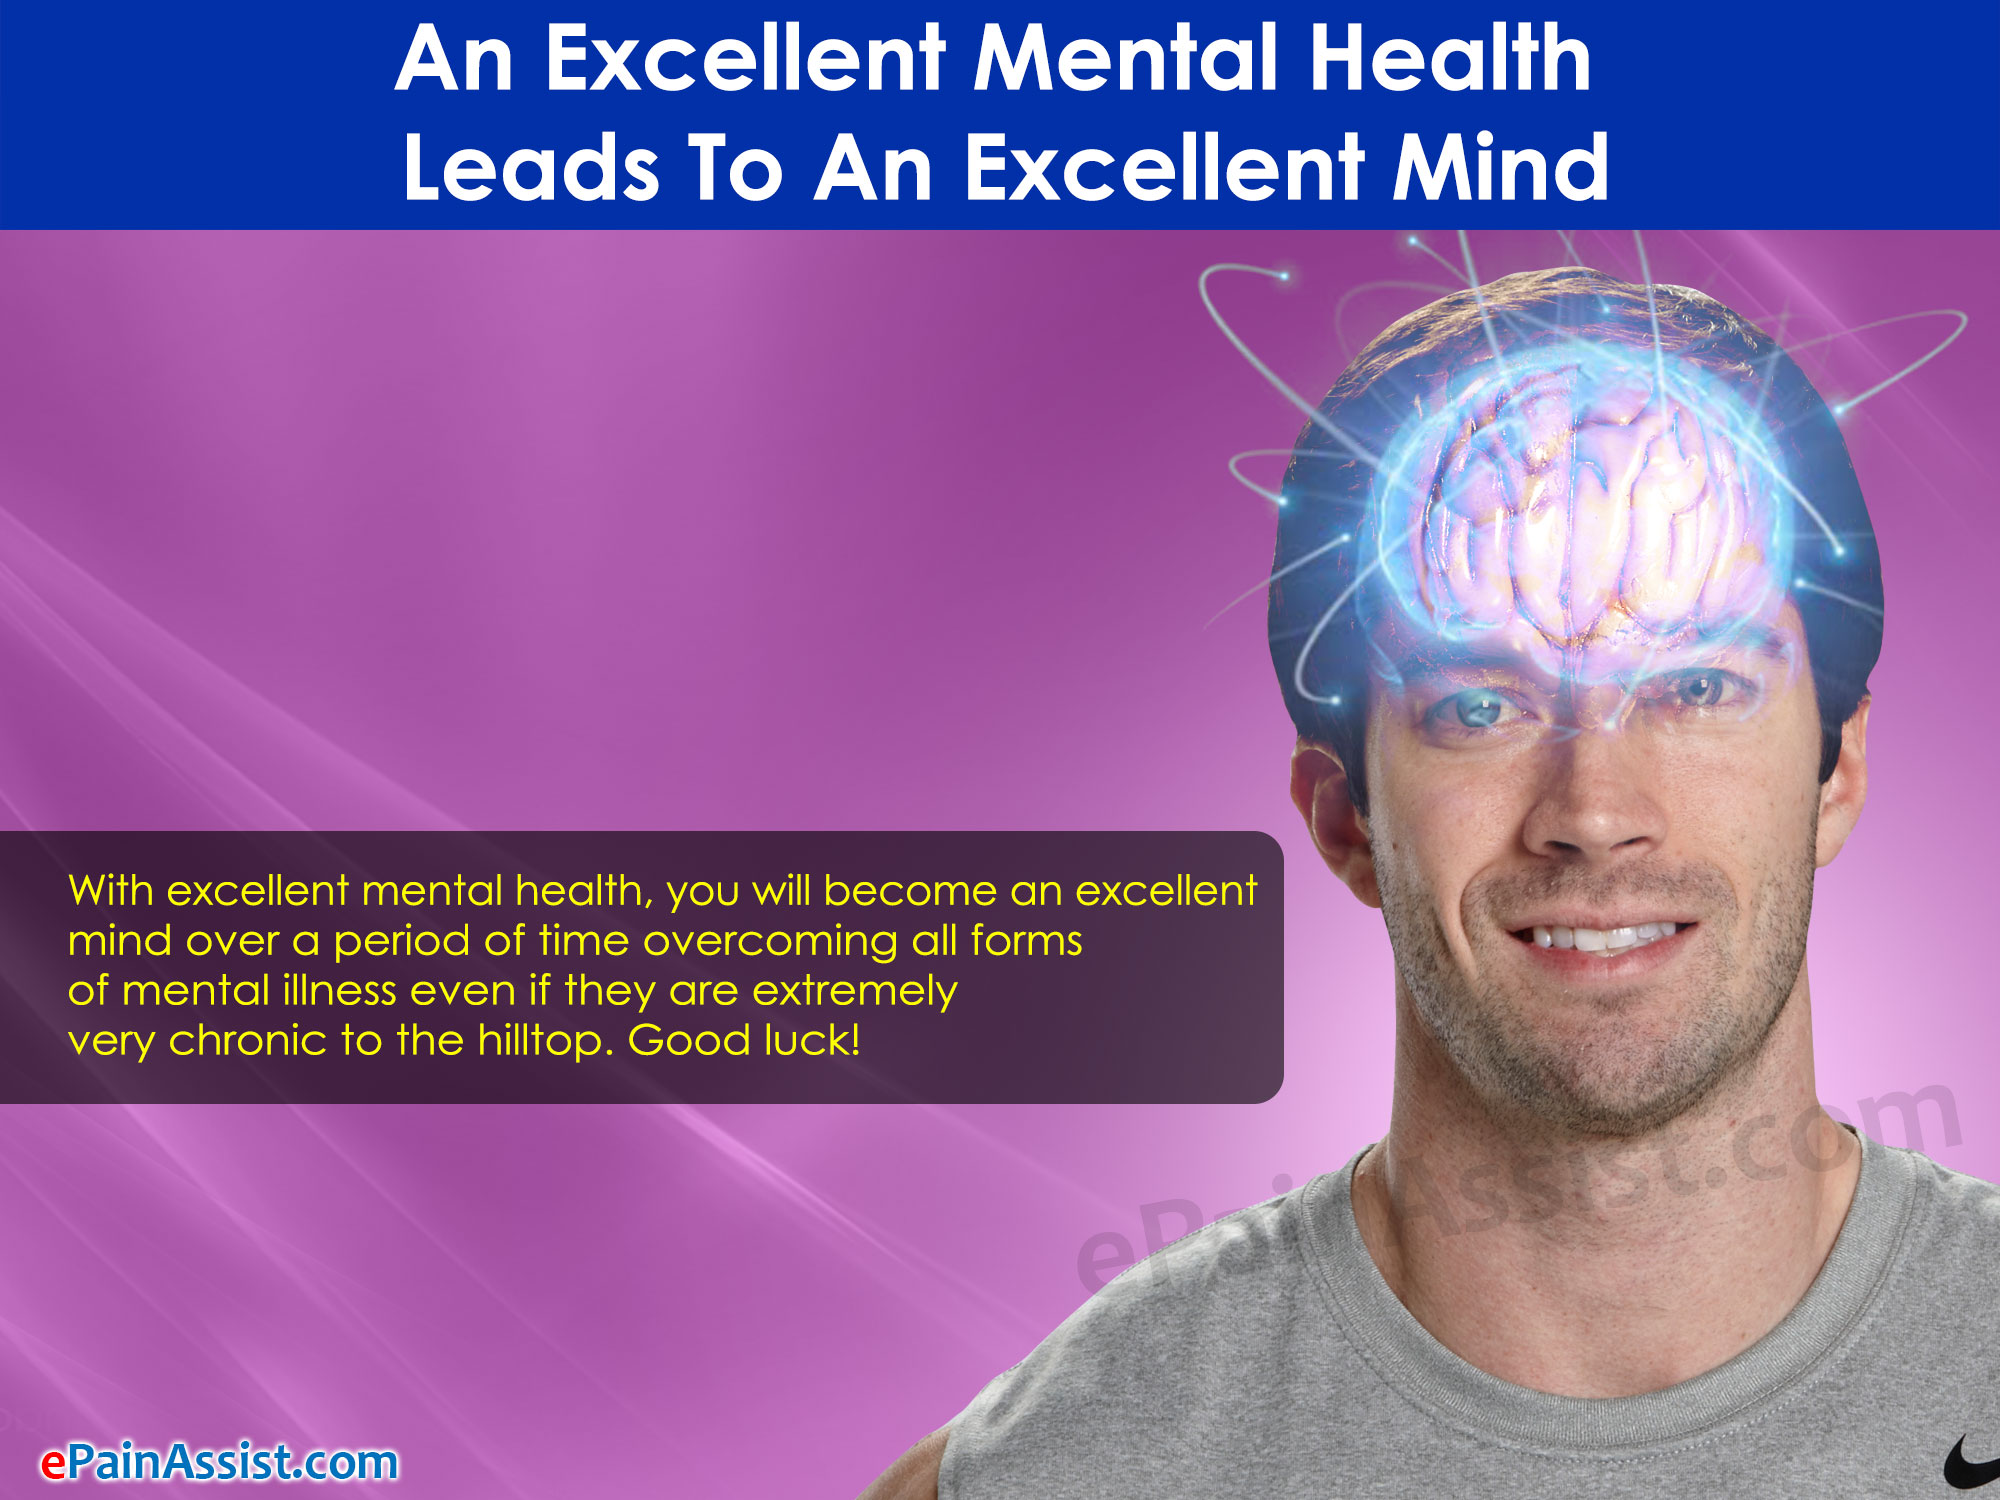 An Excellent Mental Health Leads To An Excellent Mind